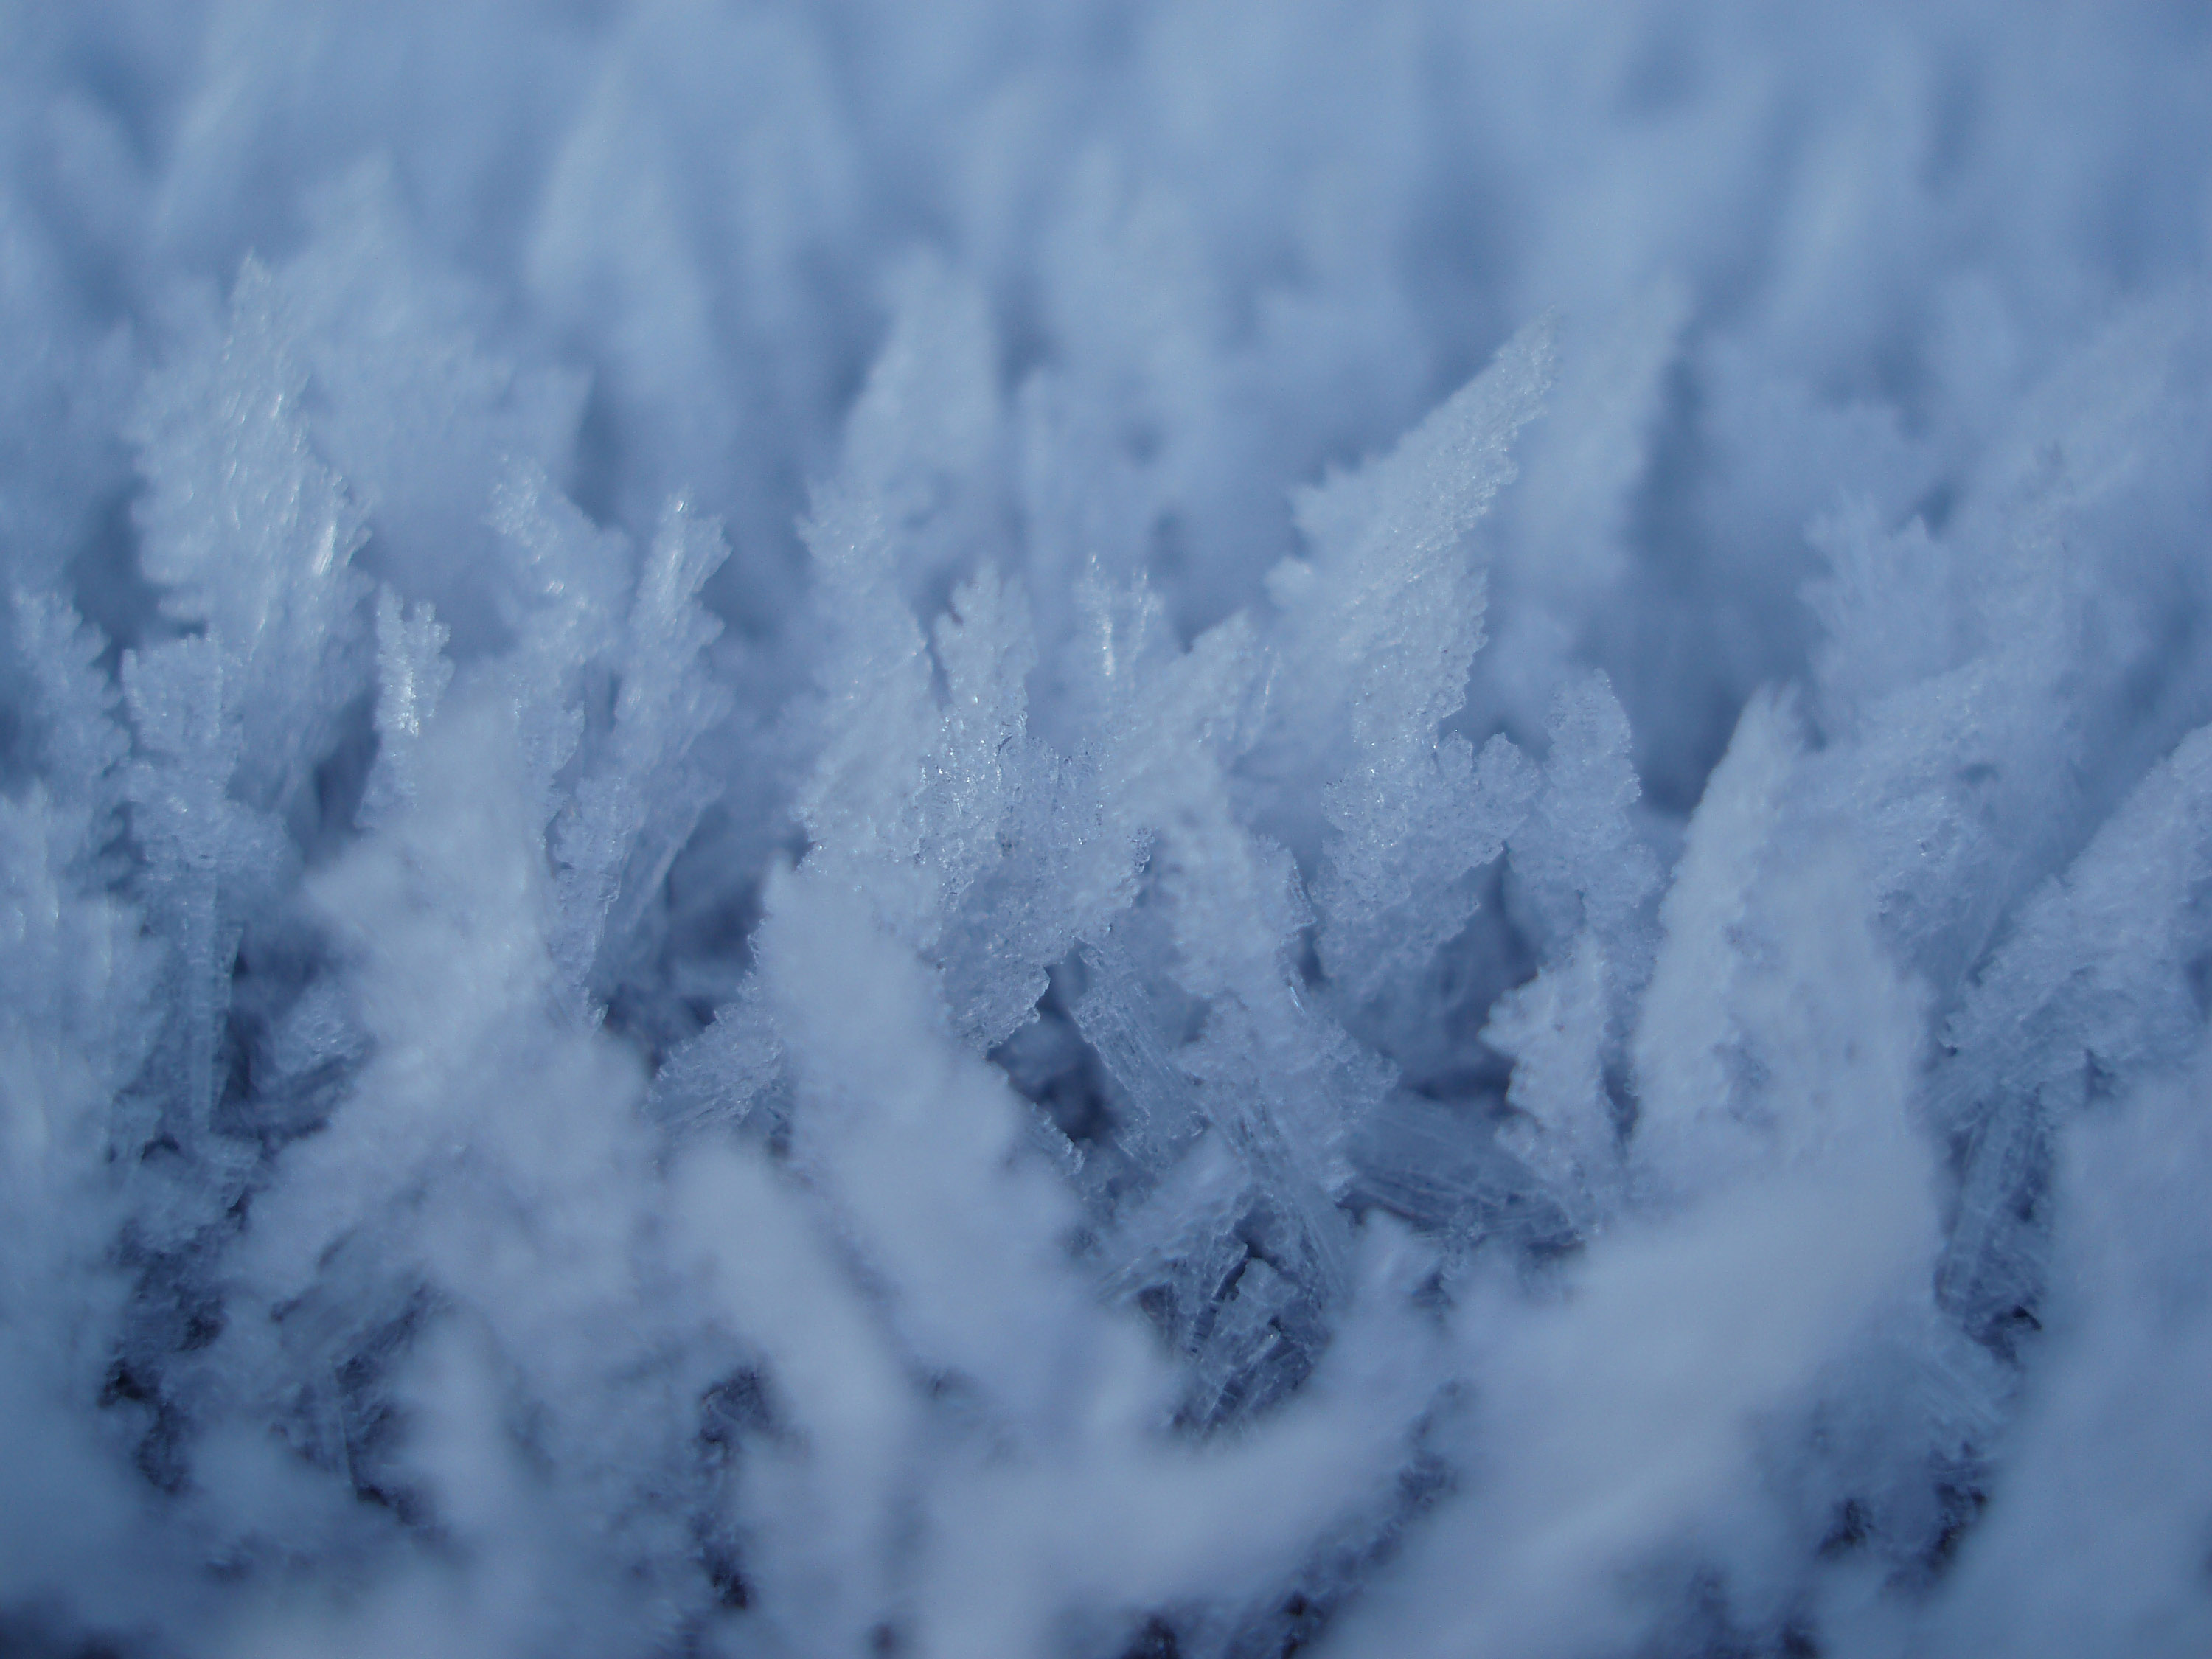 ice crystals grown over several frosty winter nights